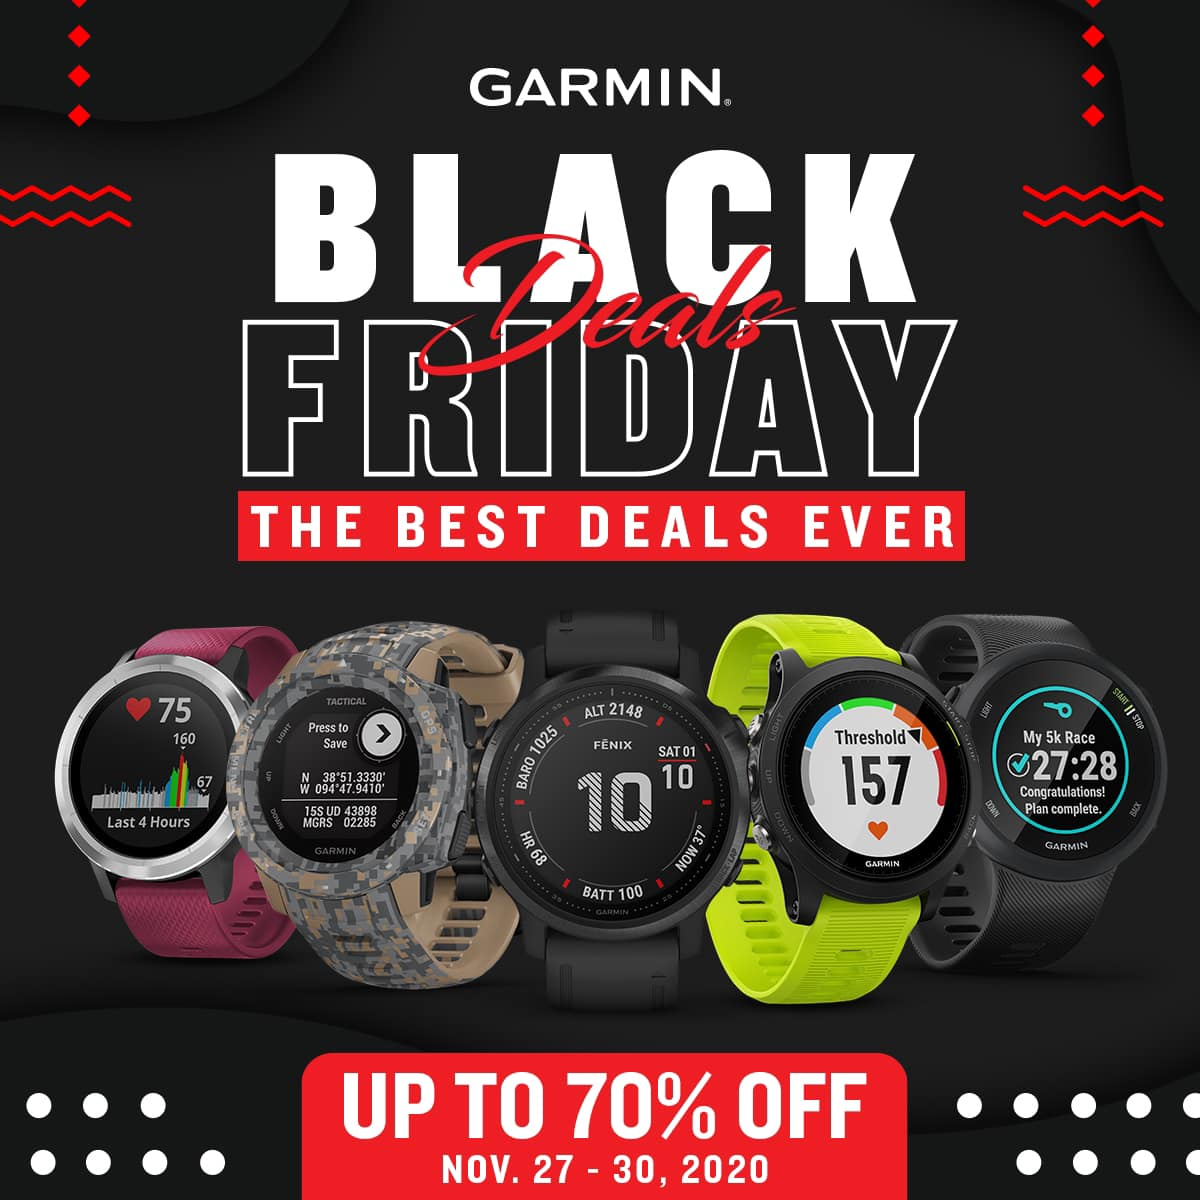 It's here — the biggest and the best deals ever from Garmin